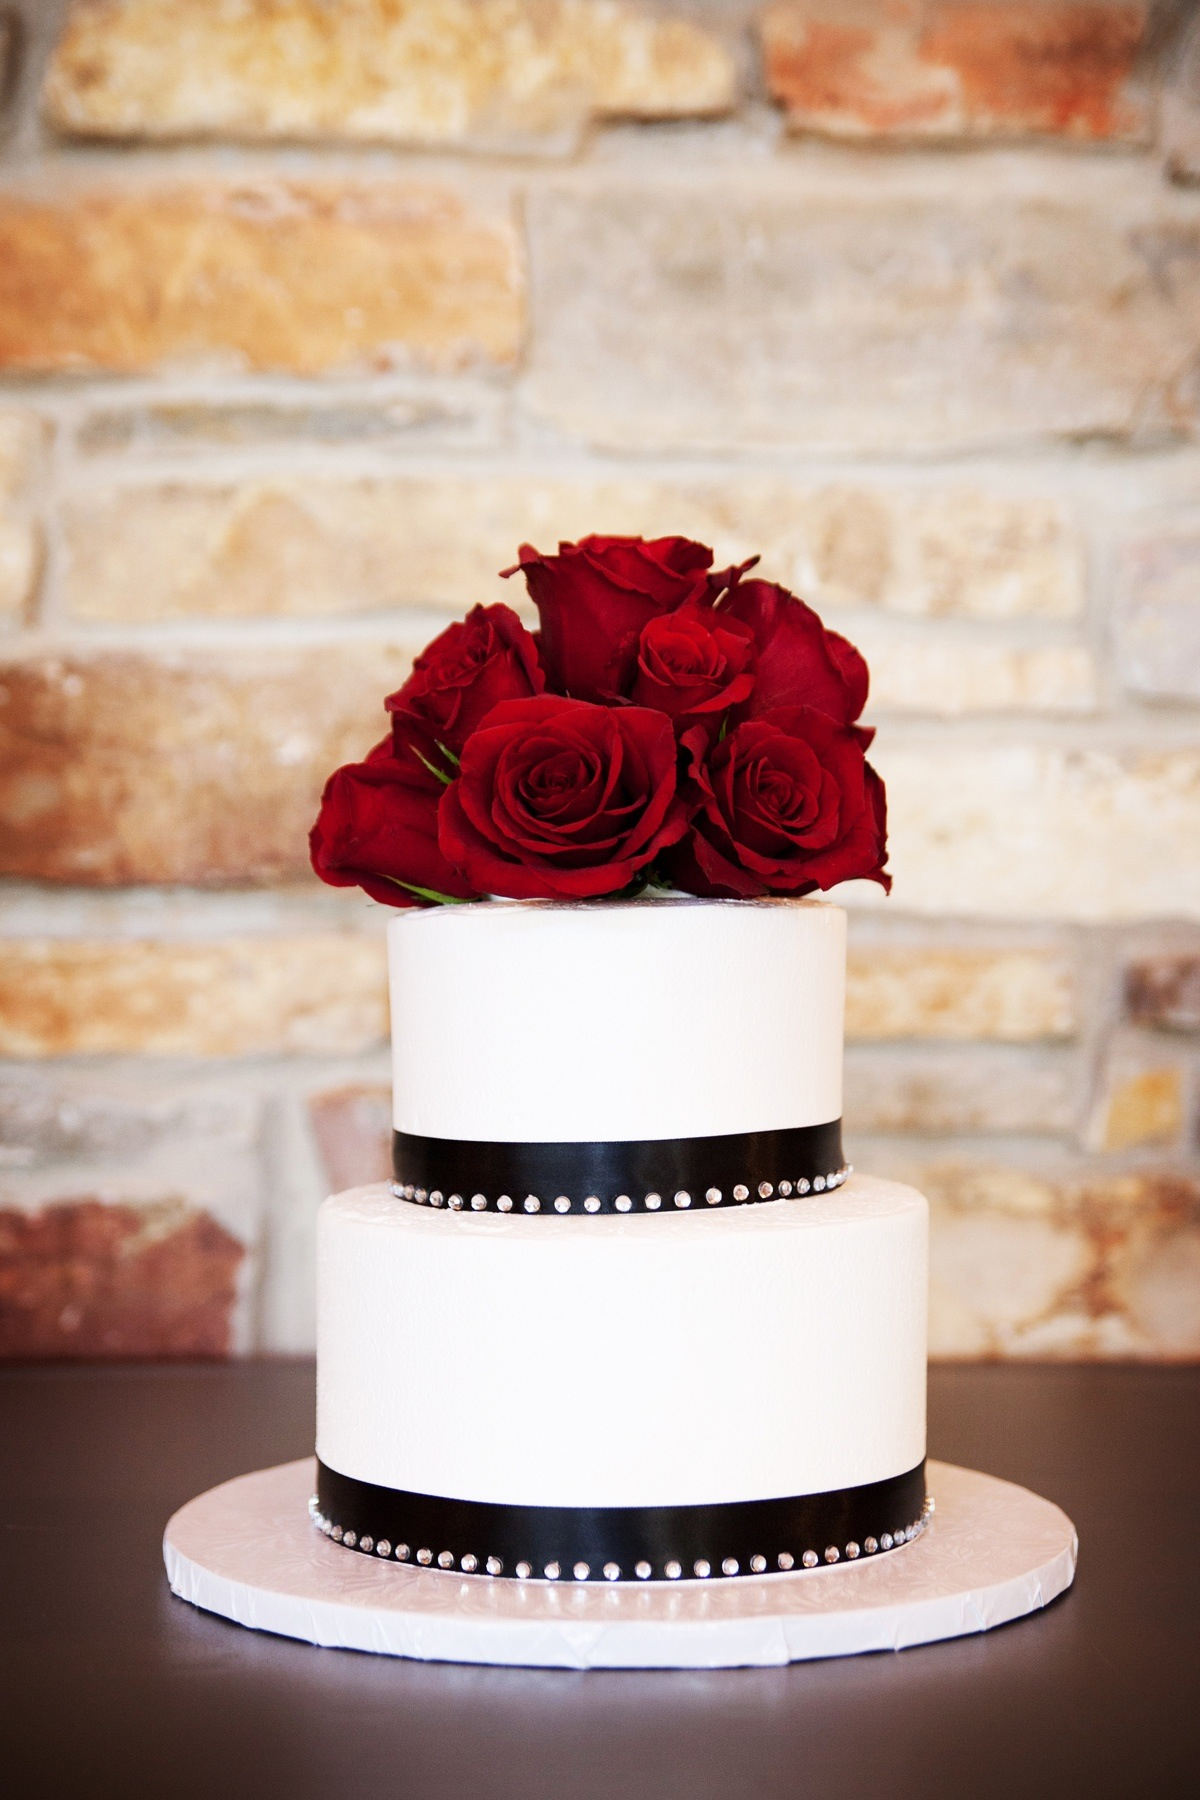 Simple Wedding Cakes with Red and Black